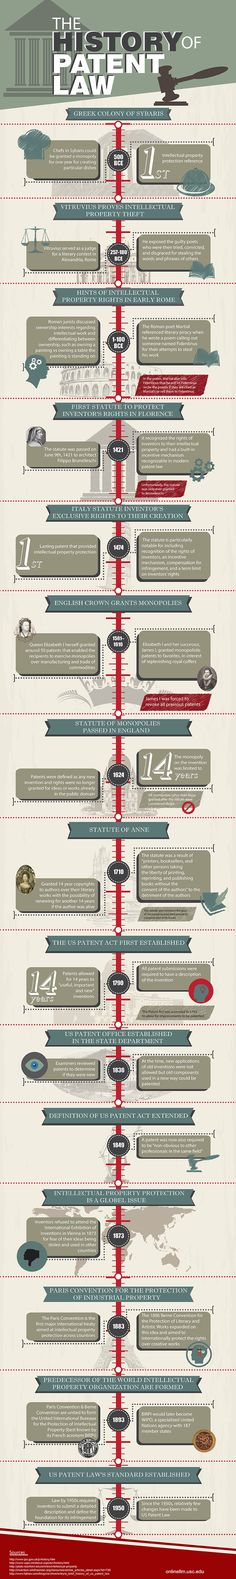 #Infographic on the global history of #patent law via University of Southern California Online LLM #IP